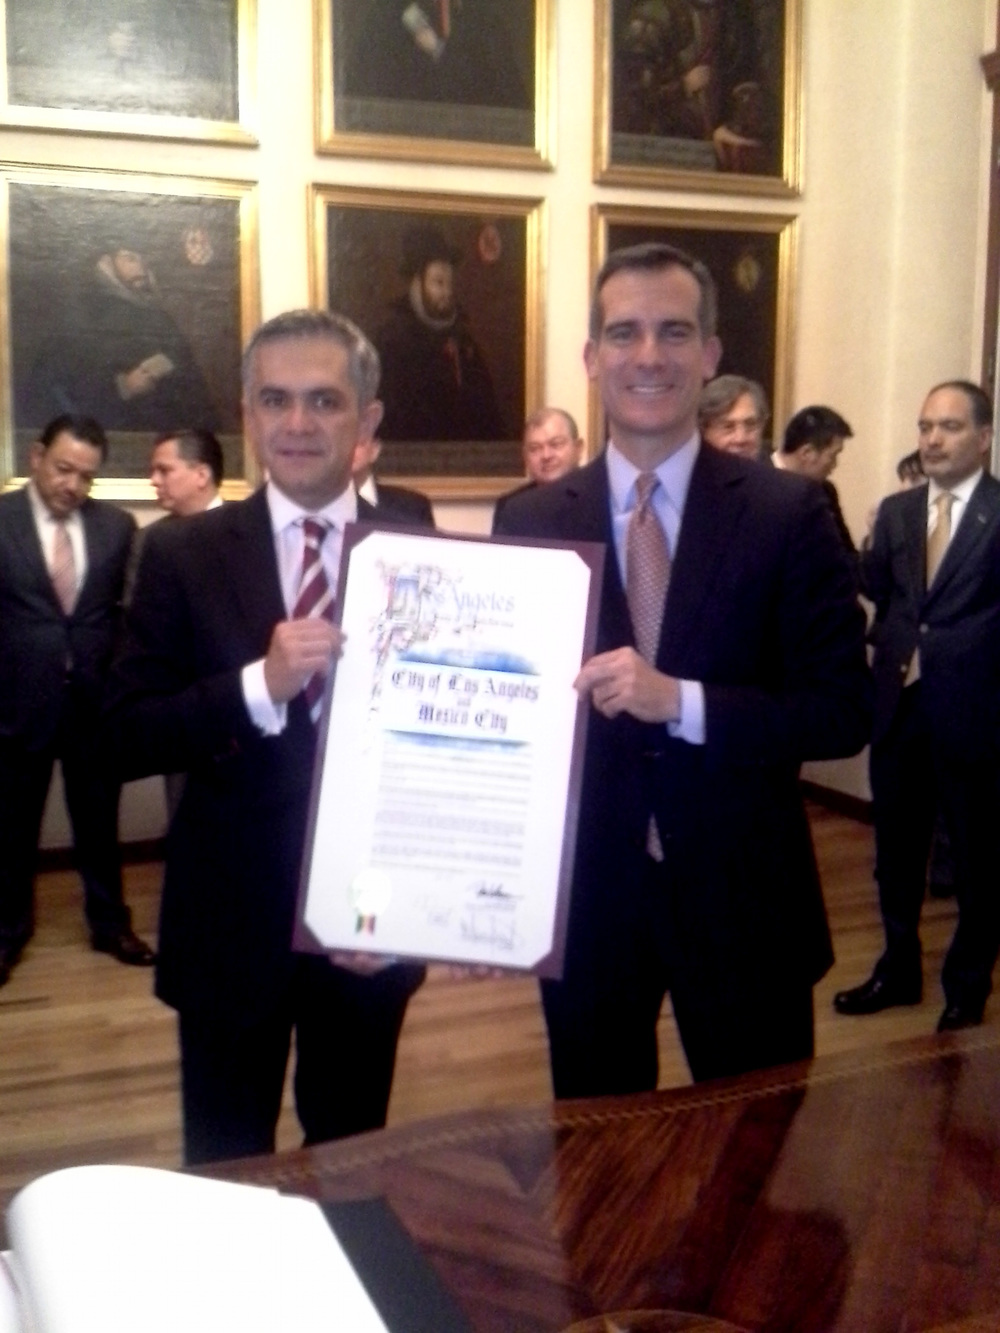 Mayor of Mexico City, Miguel Ángel Mancera and Mayor of Los Angeles, Eric Garcetti.